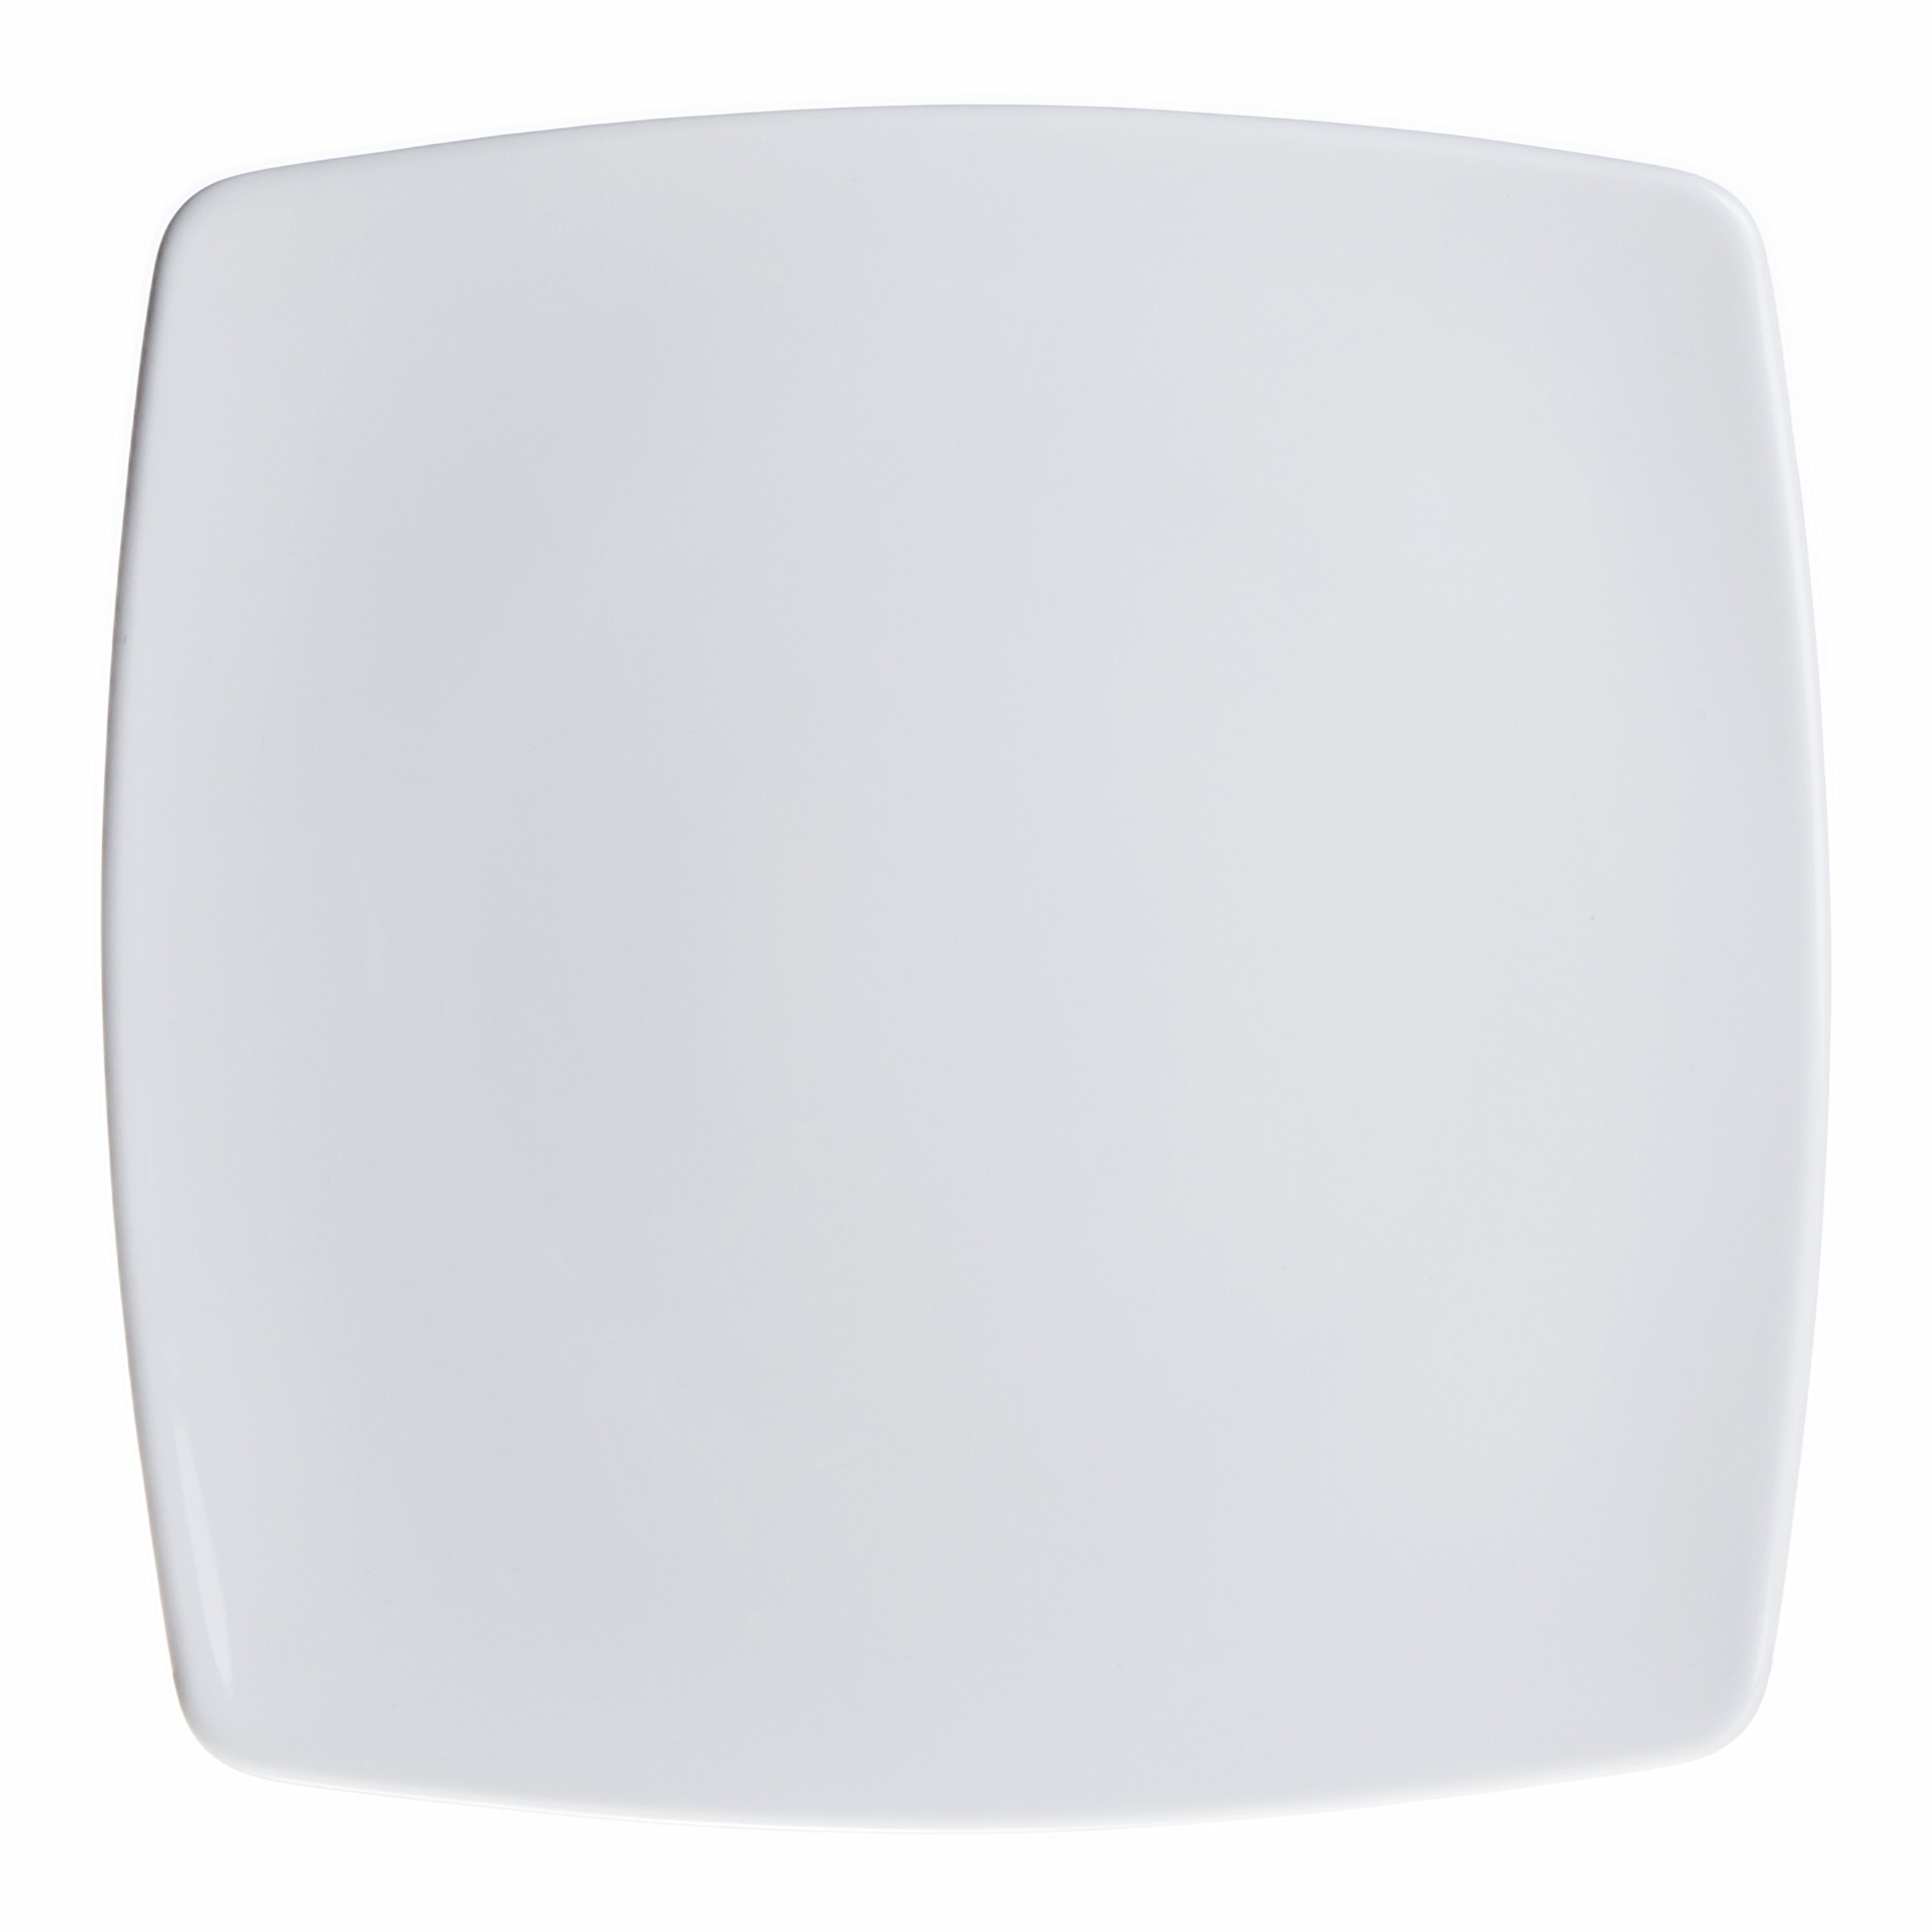 Smart And Cozy 12-Piece Square Dinner/Serving Plates Set, White Porcelain, Restaurant&Hotel Quality, size 10.2''